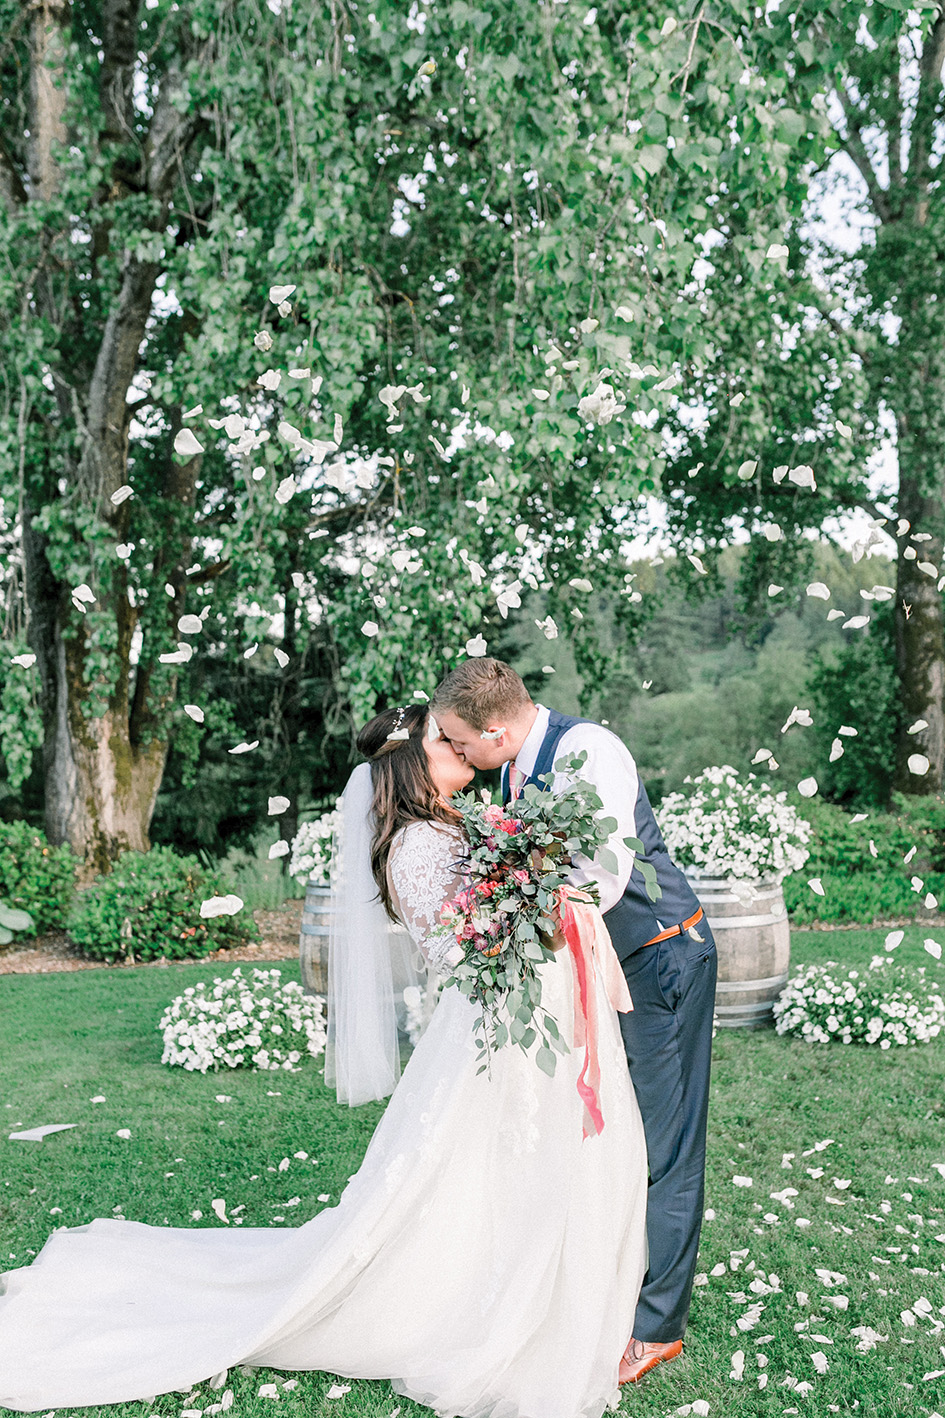 Danielle and David wed at Beacon Hill Winery